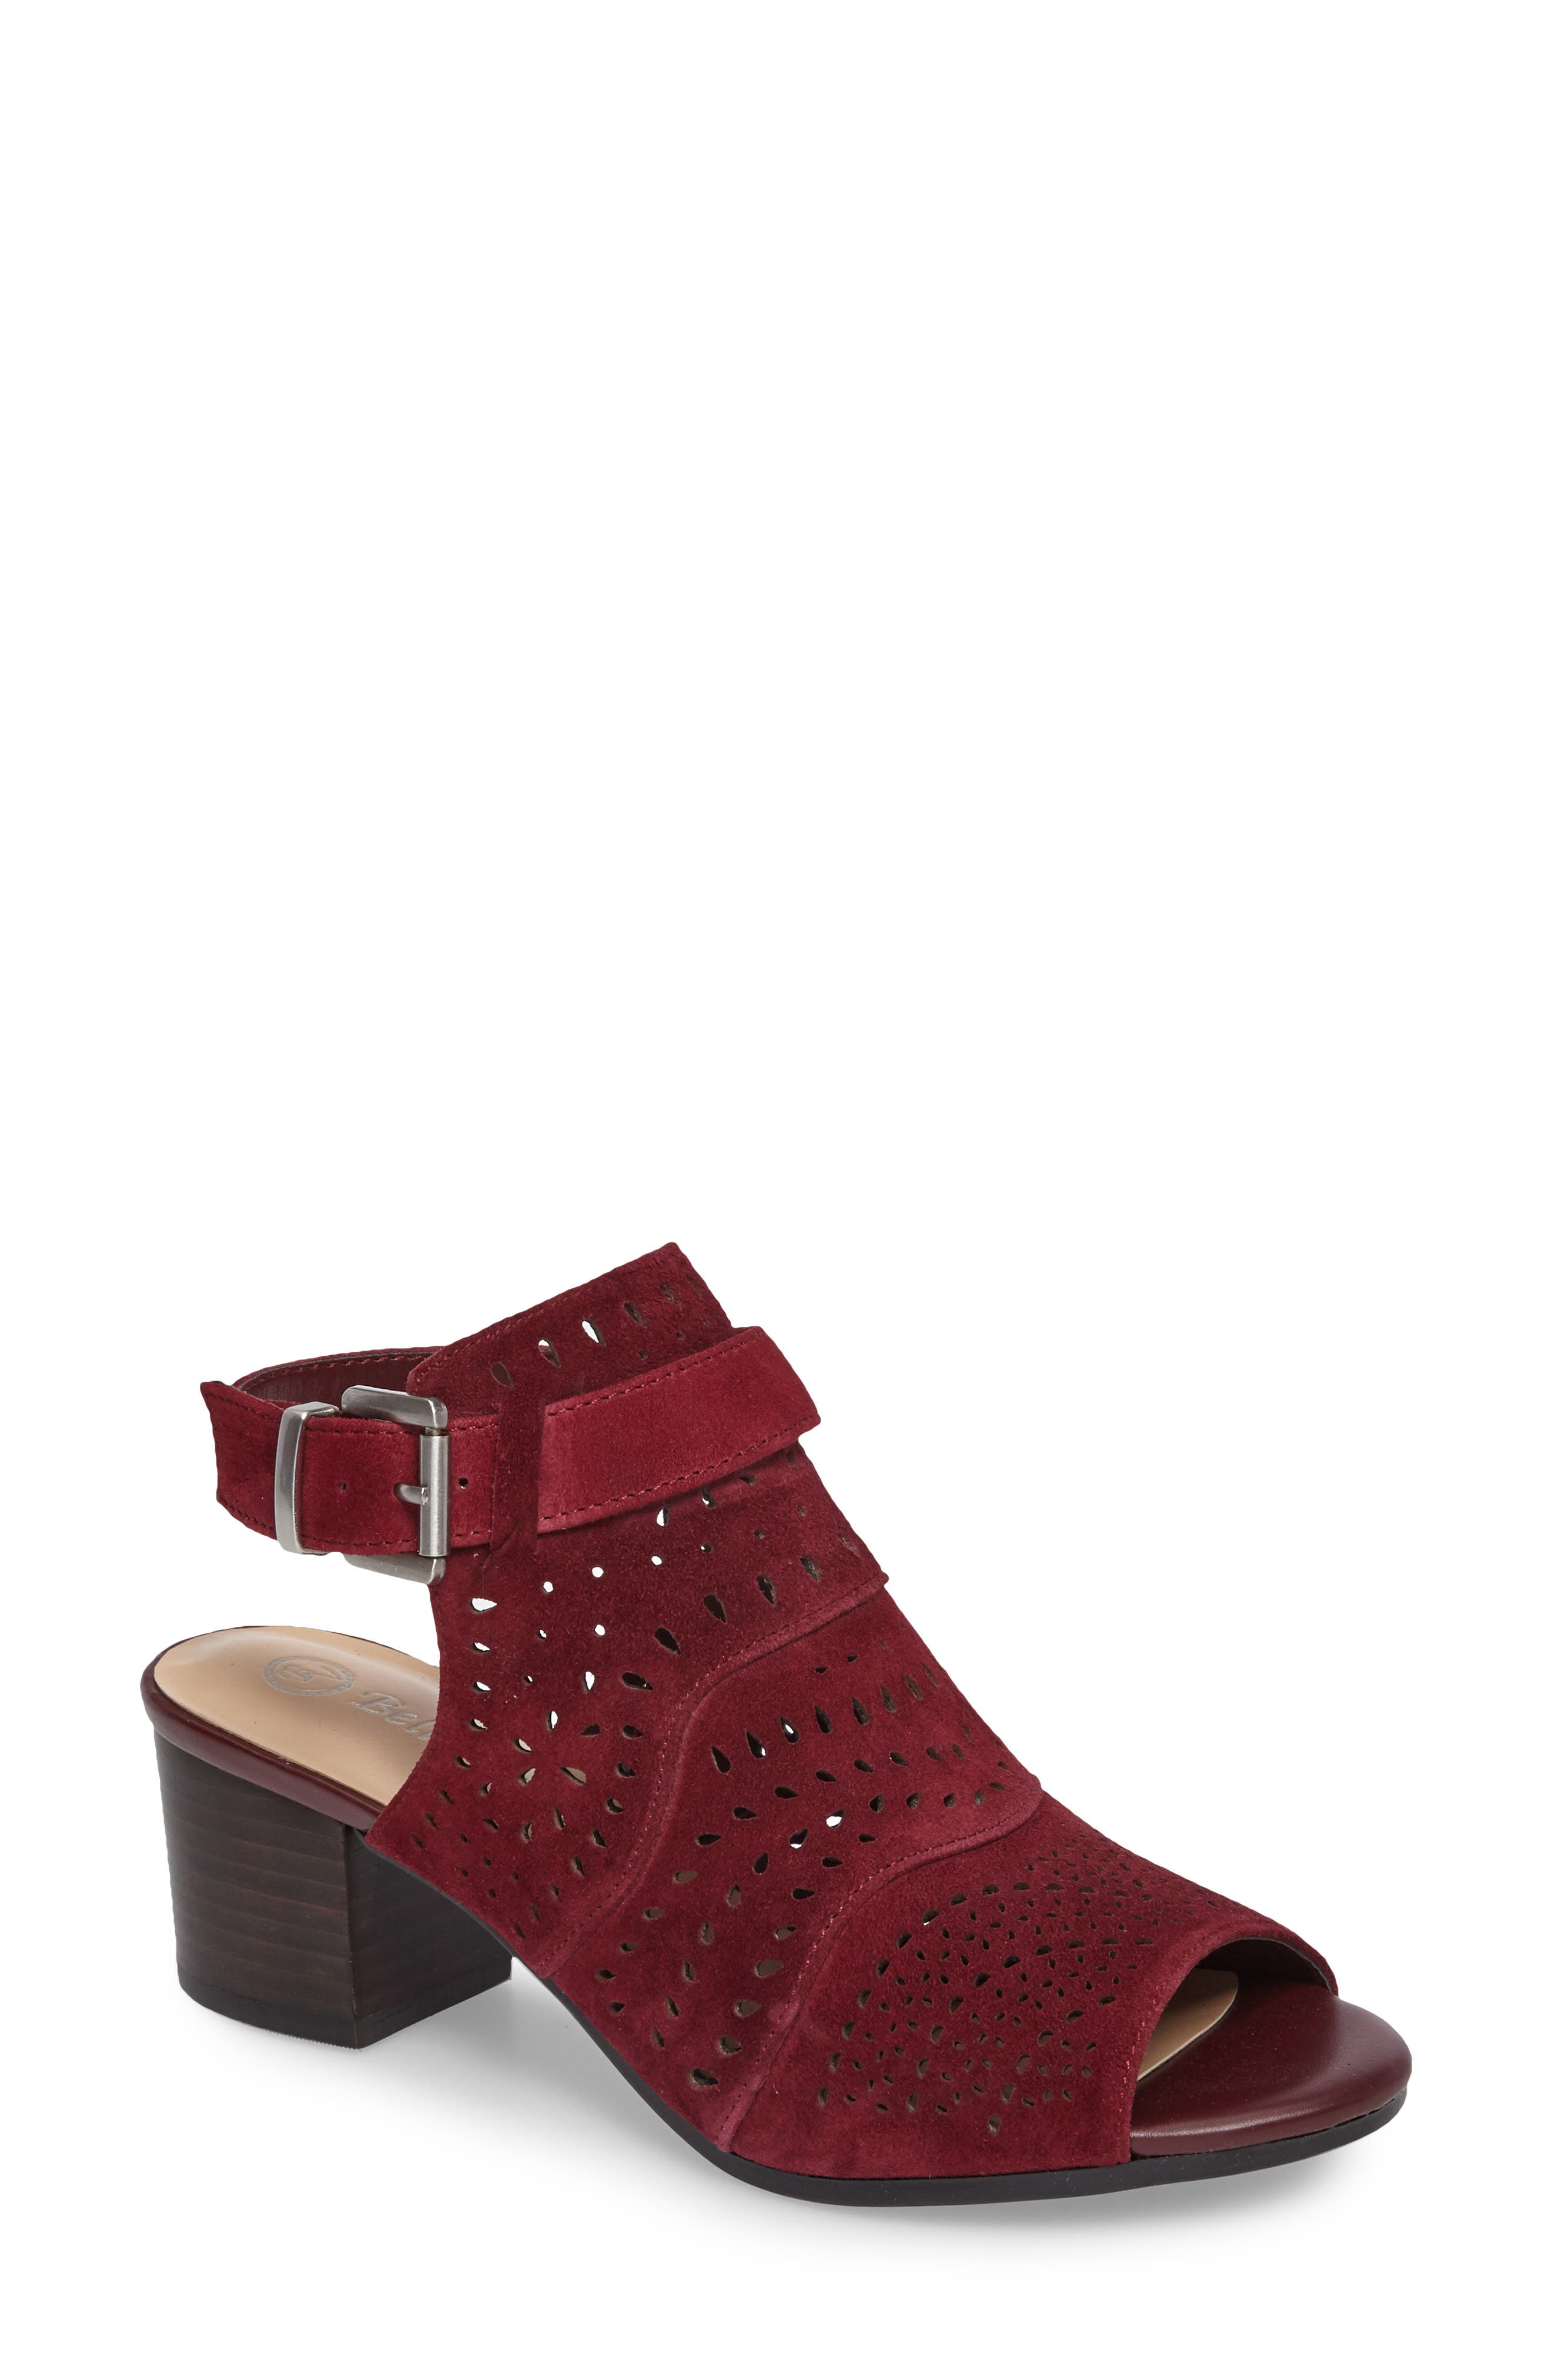 Fonda Perforated Sandal,                         Main,                         color, Burgundy Suede